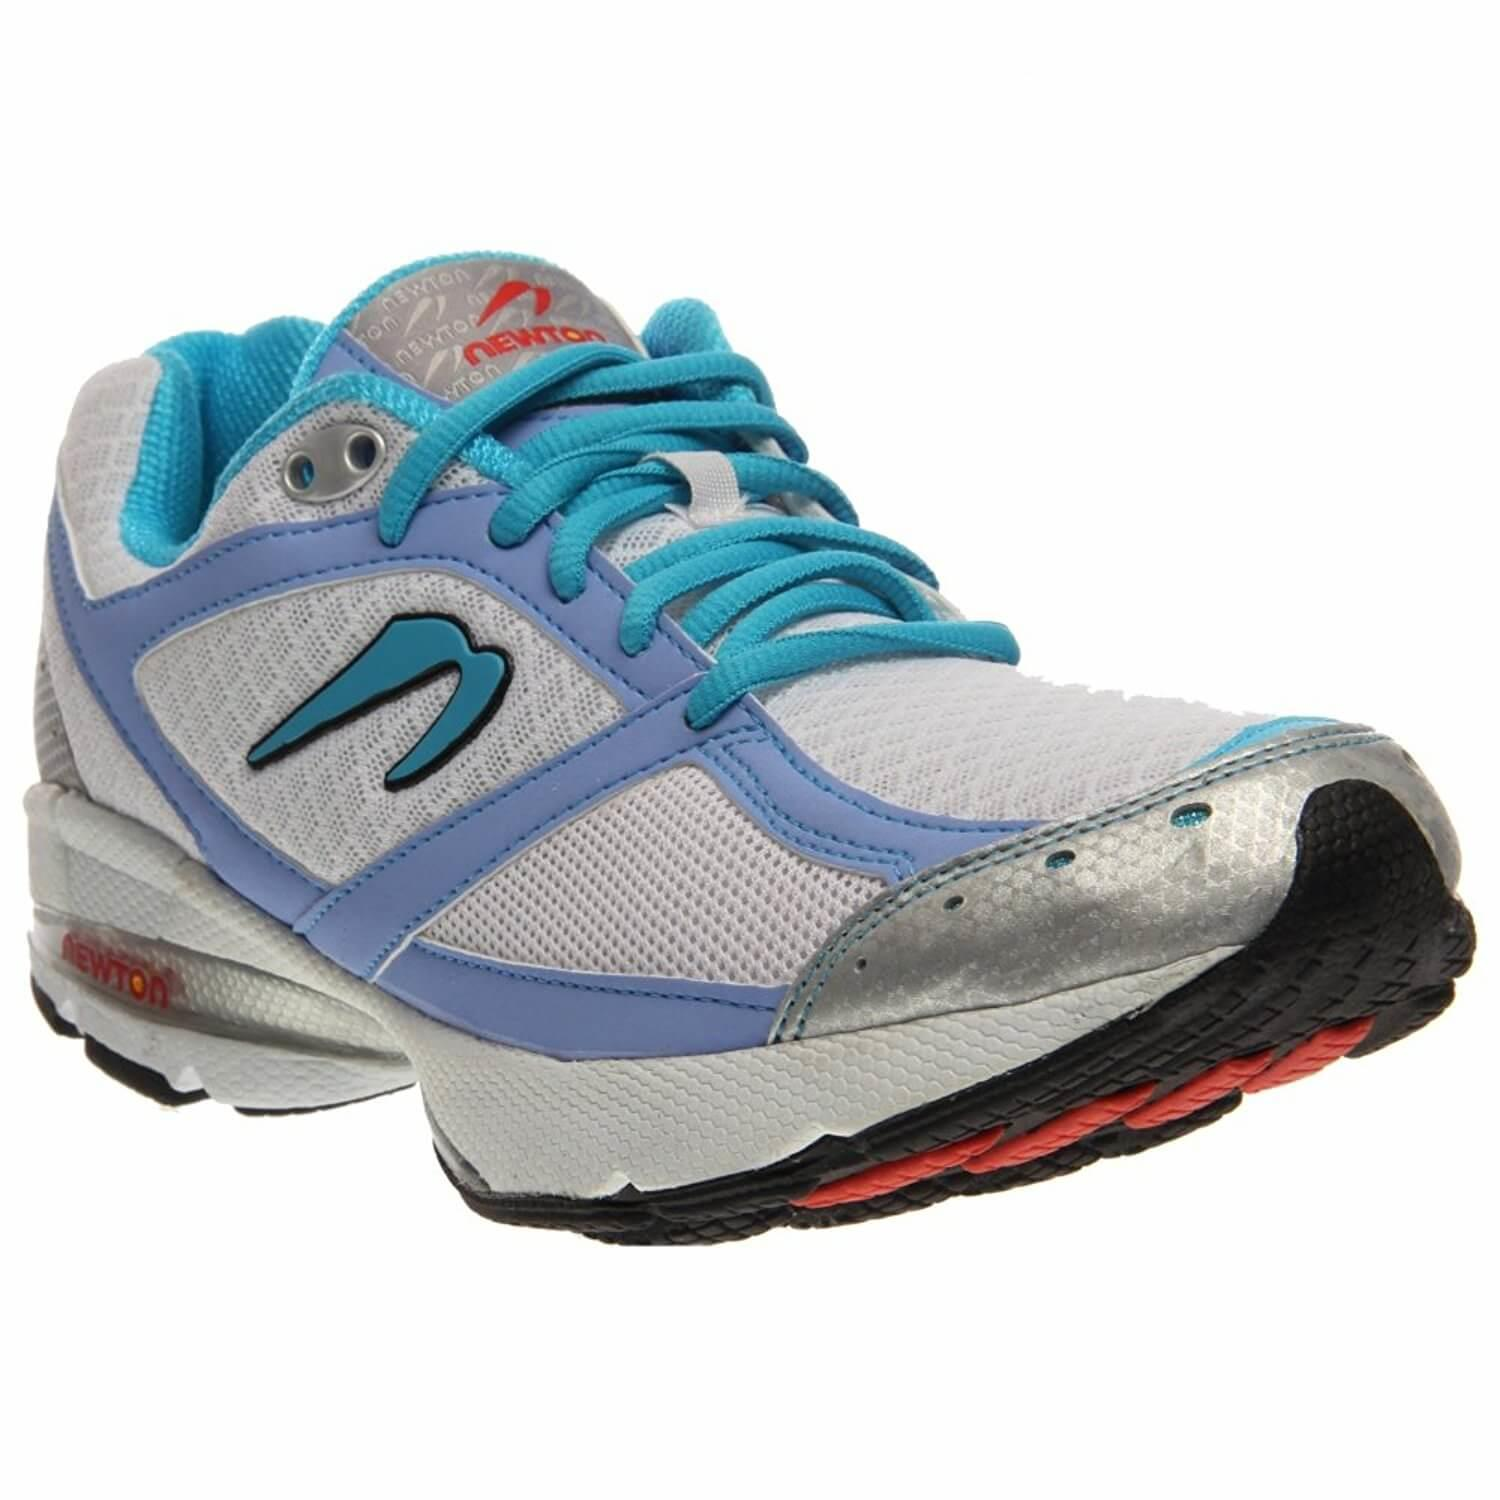 10 Best Newton Running Shoes Reviewed in 2018 | RunnerClick